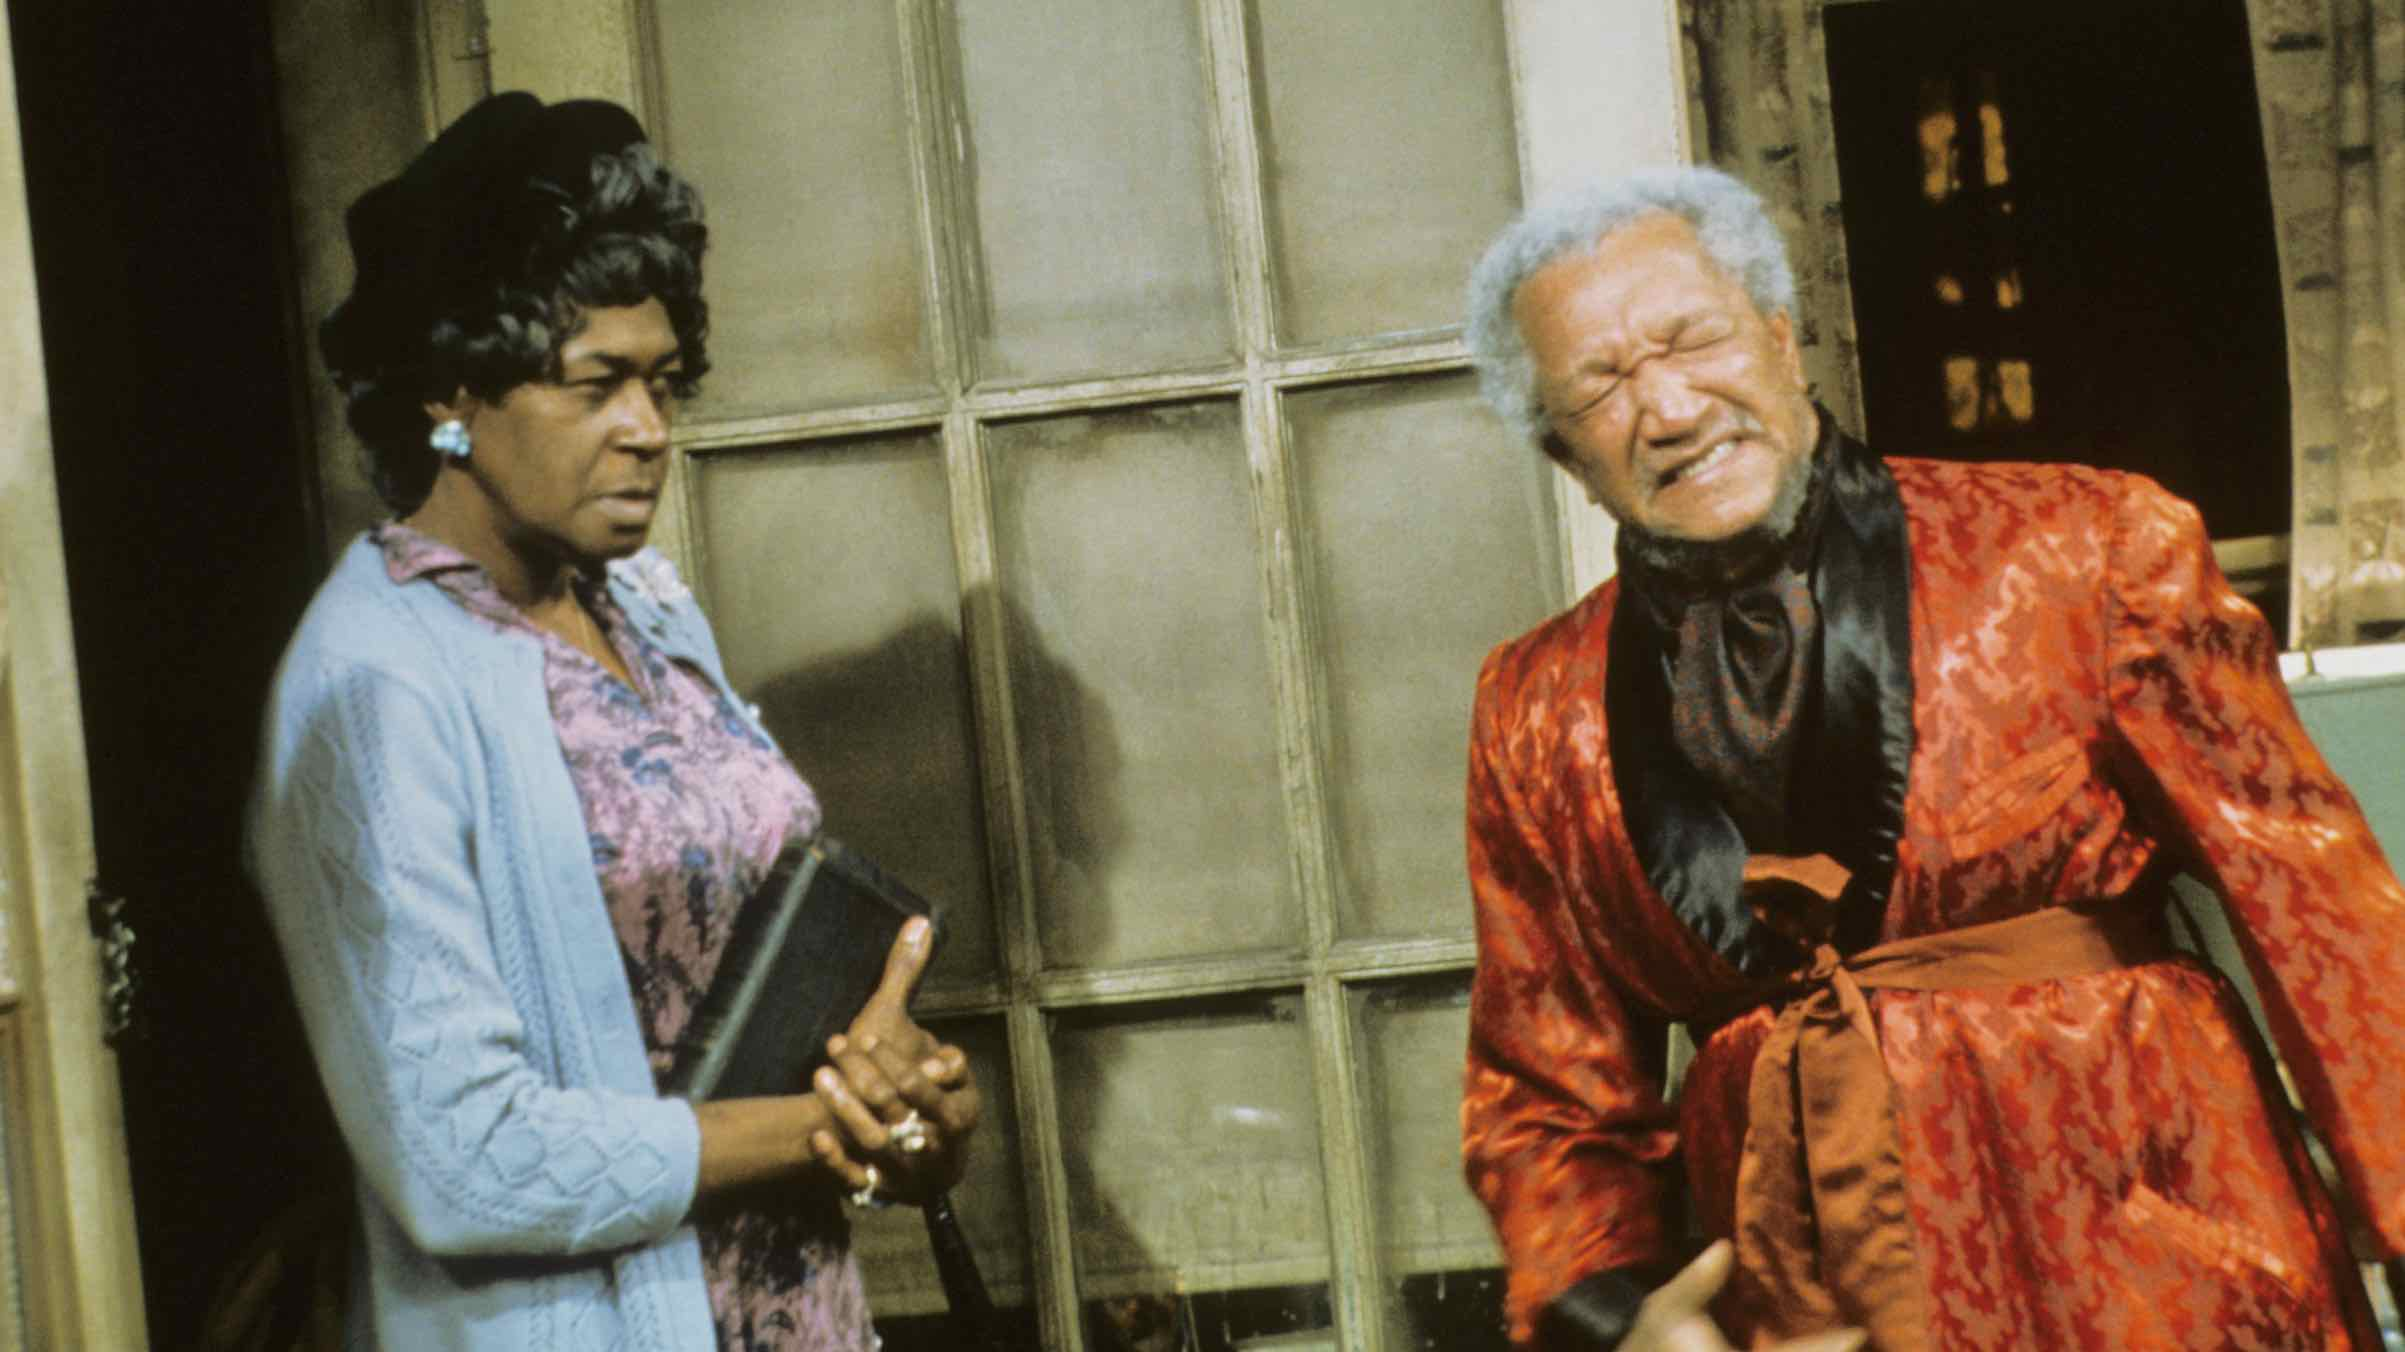 Sanford-And-Son-Cast-Trivia-question4-image